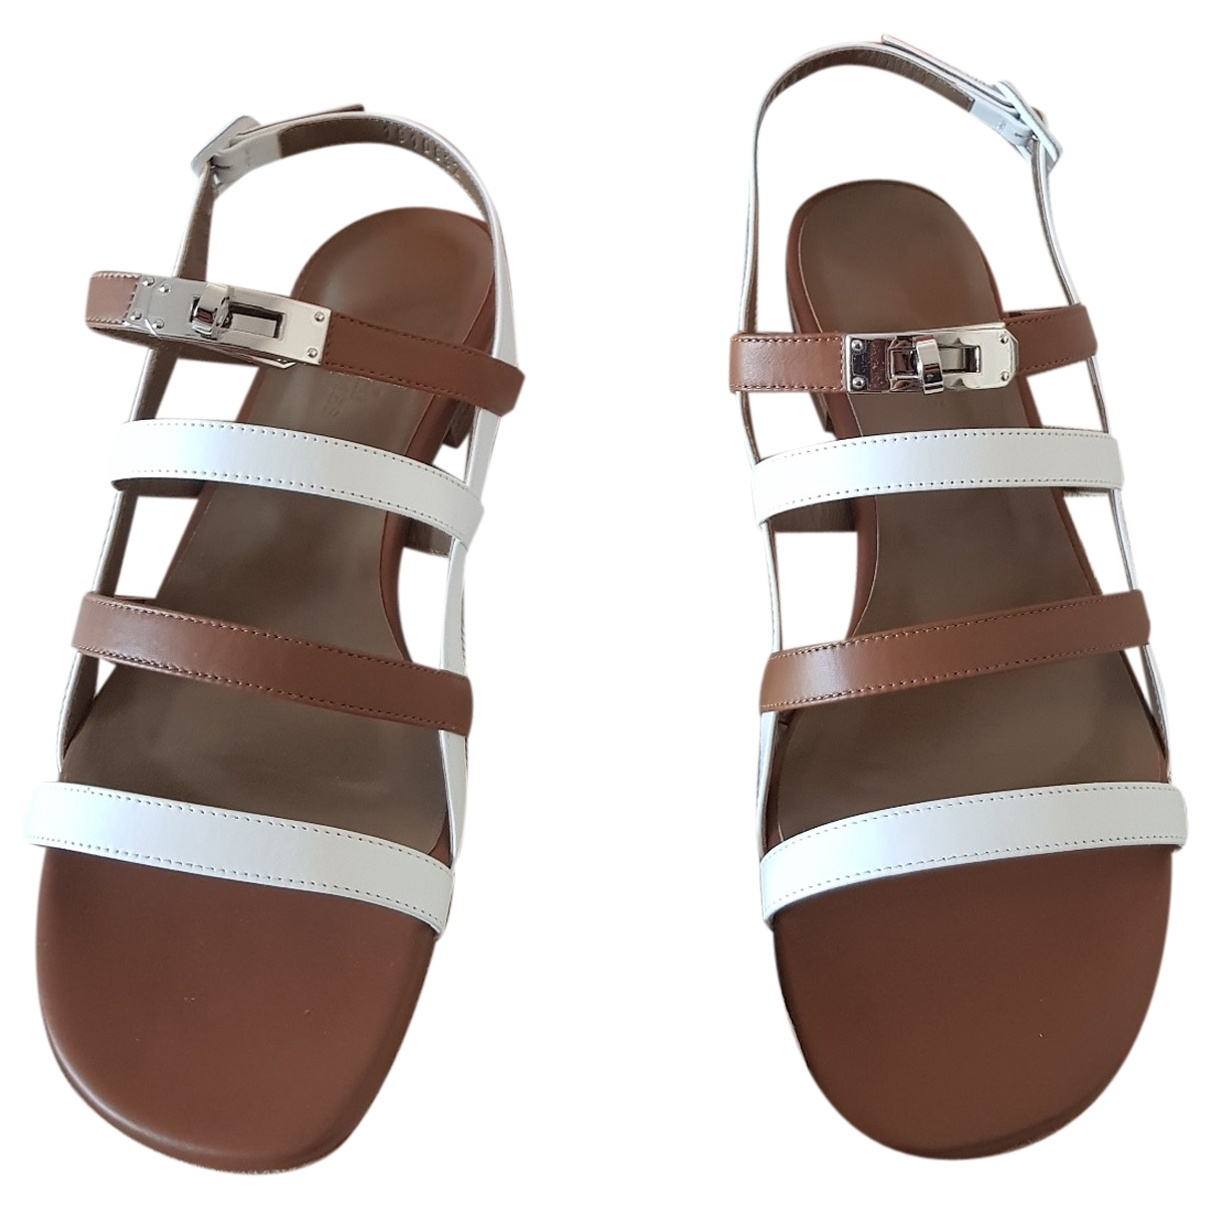 Hermès Transat White Leather Sandals for Women 39.5 EU